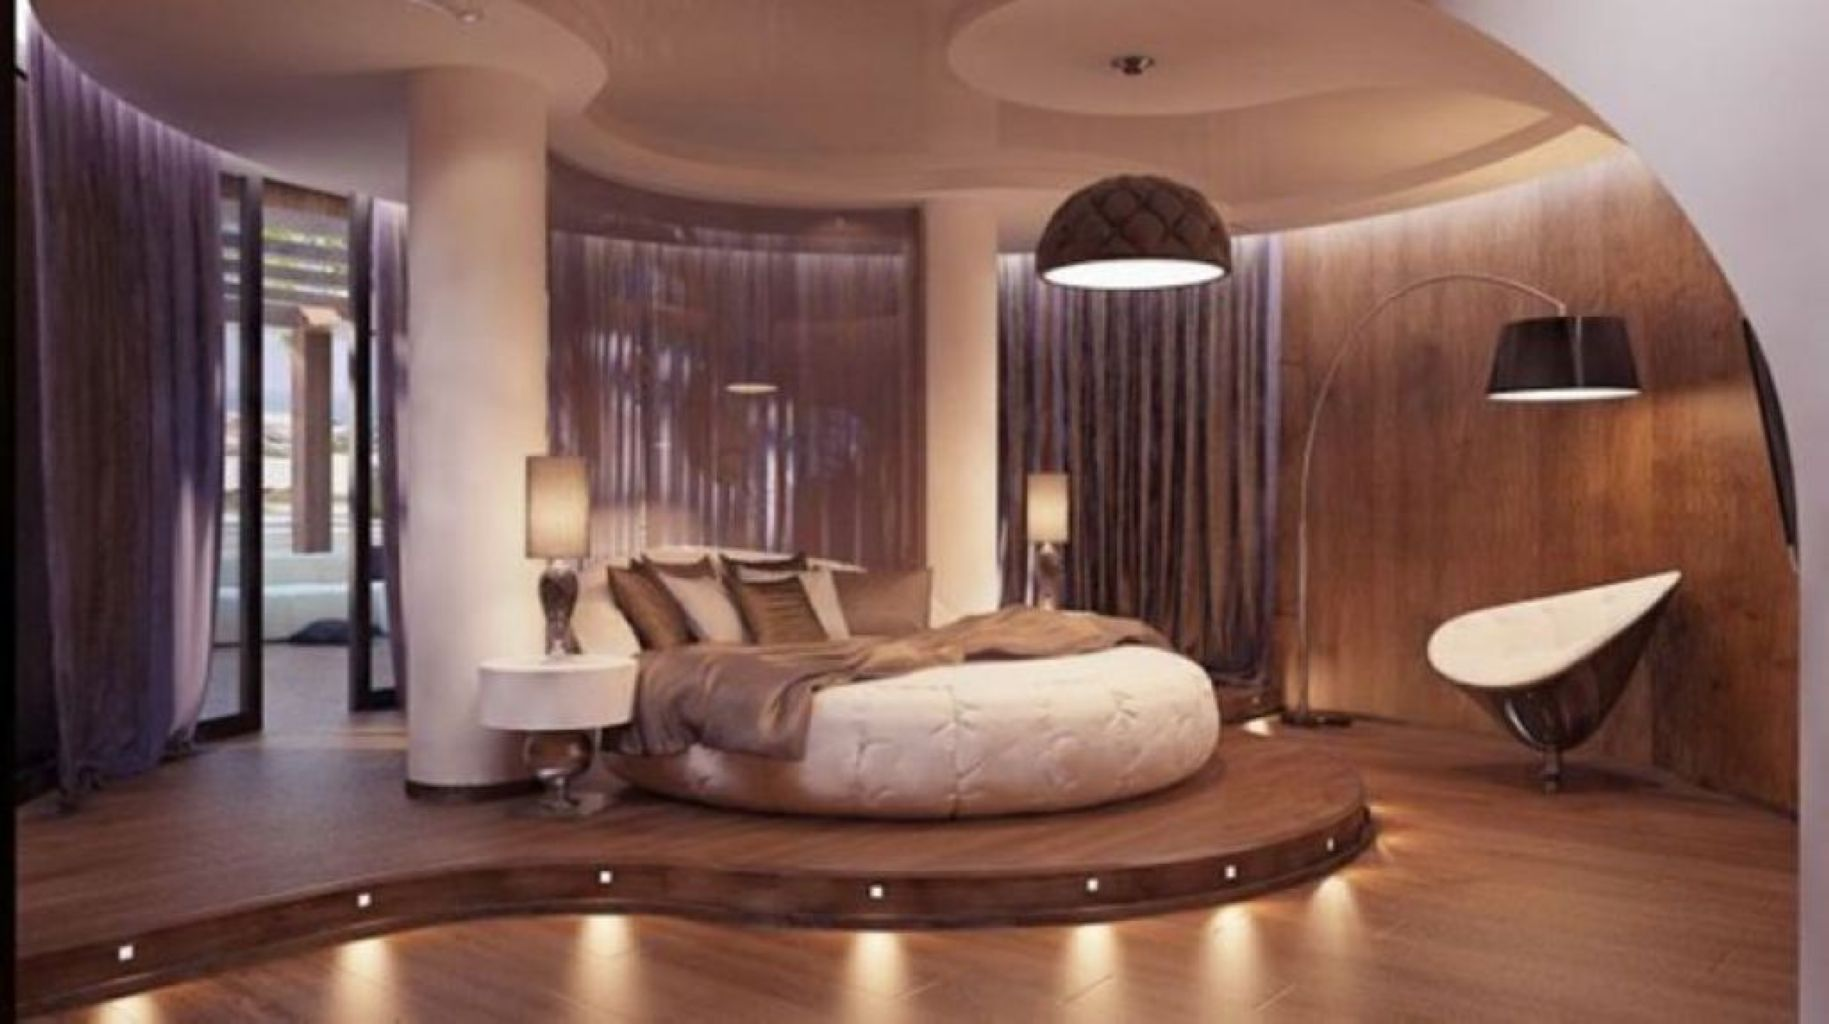 36 Glamorous Round Bed Designs for Your Master Bedroom | Round beds ...